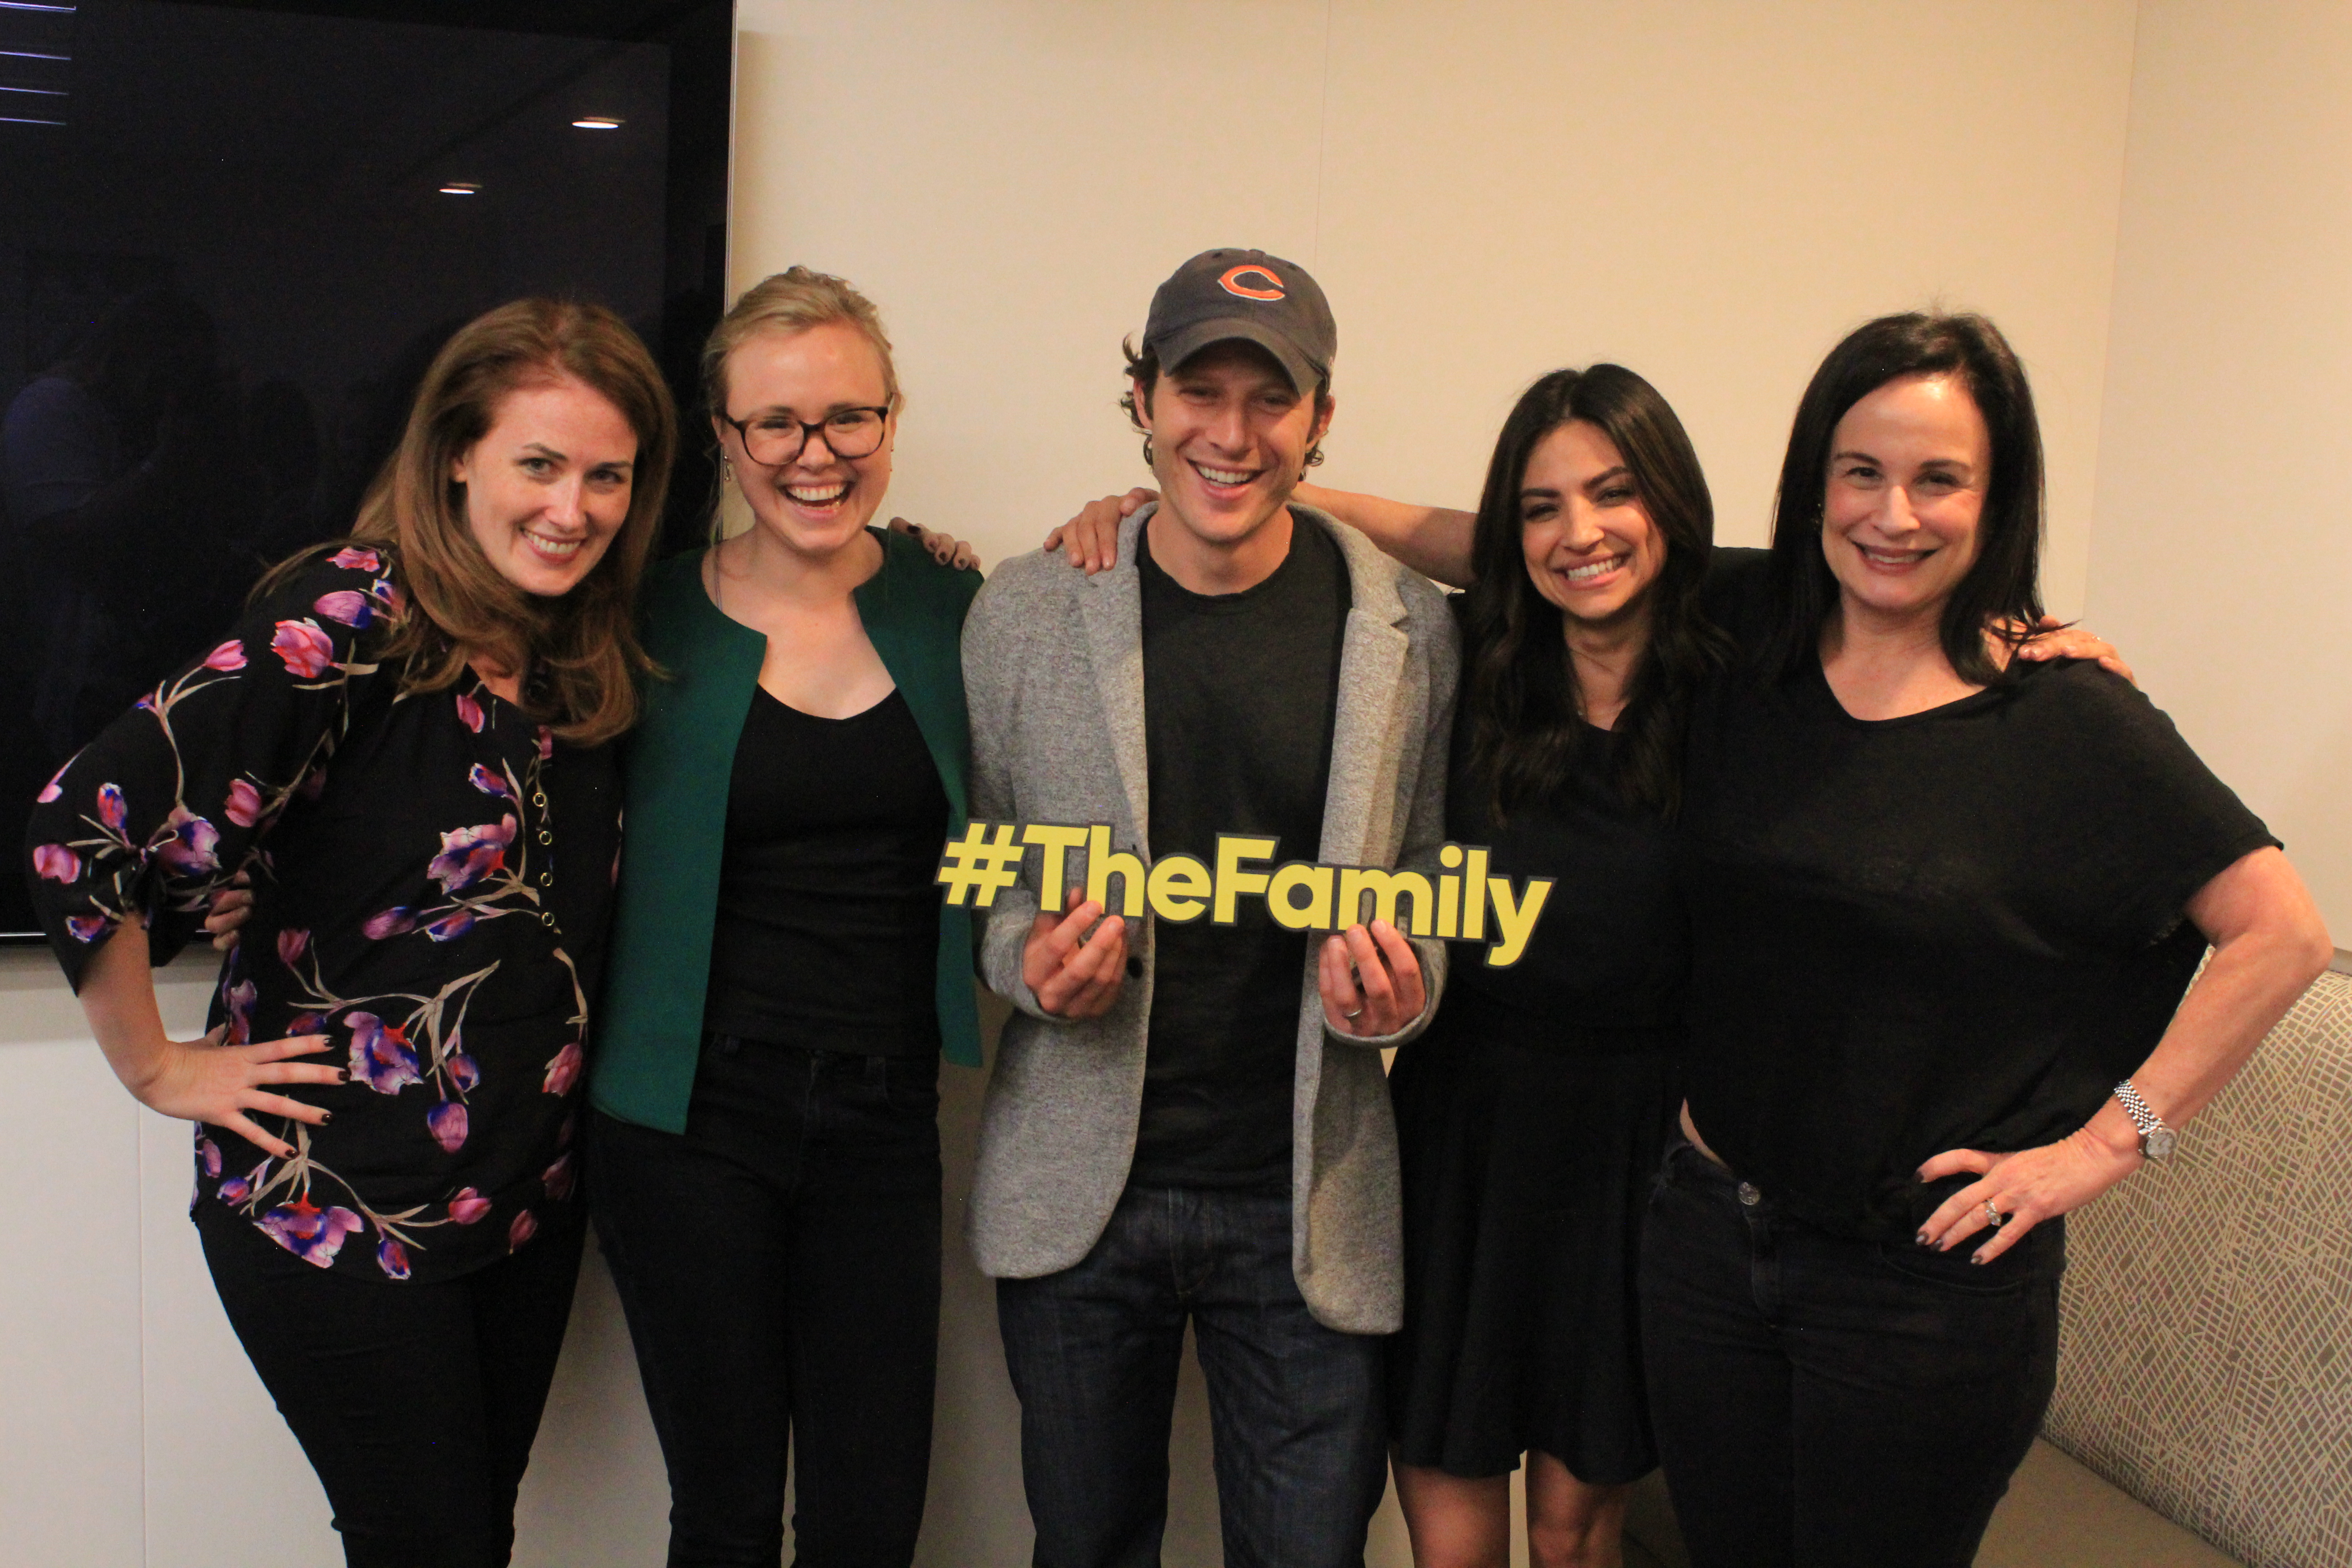 Getting Up Close and Personal with ABC's The Family